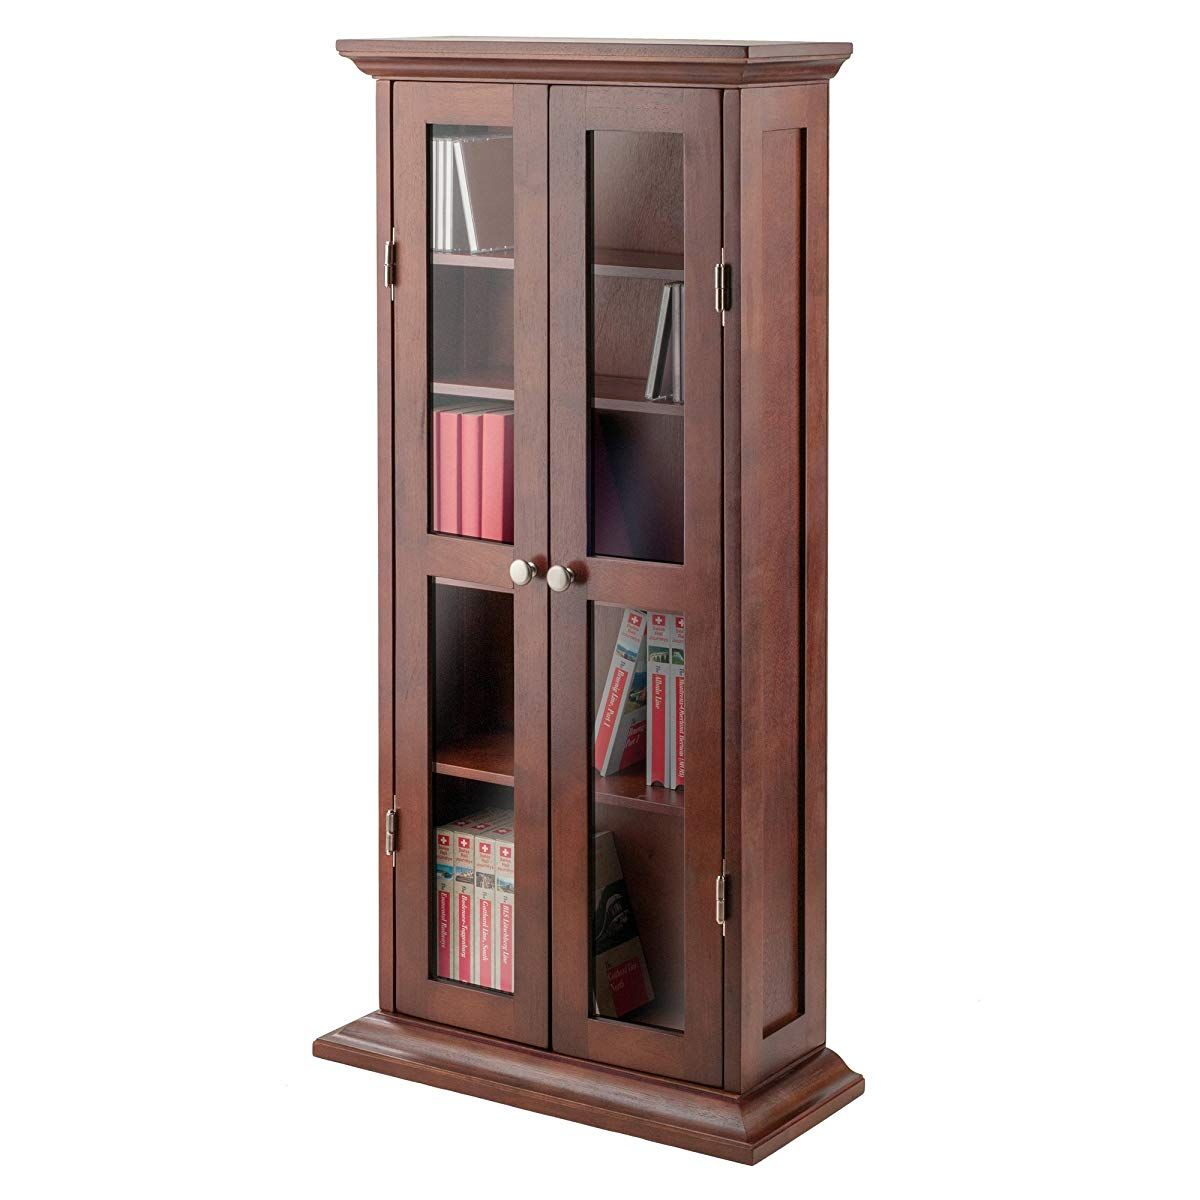 Cddvd Cabinet With Glass Doors Antique Walnut Media Cabinet With